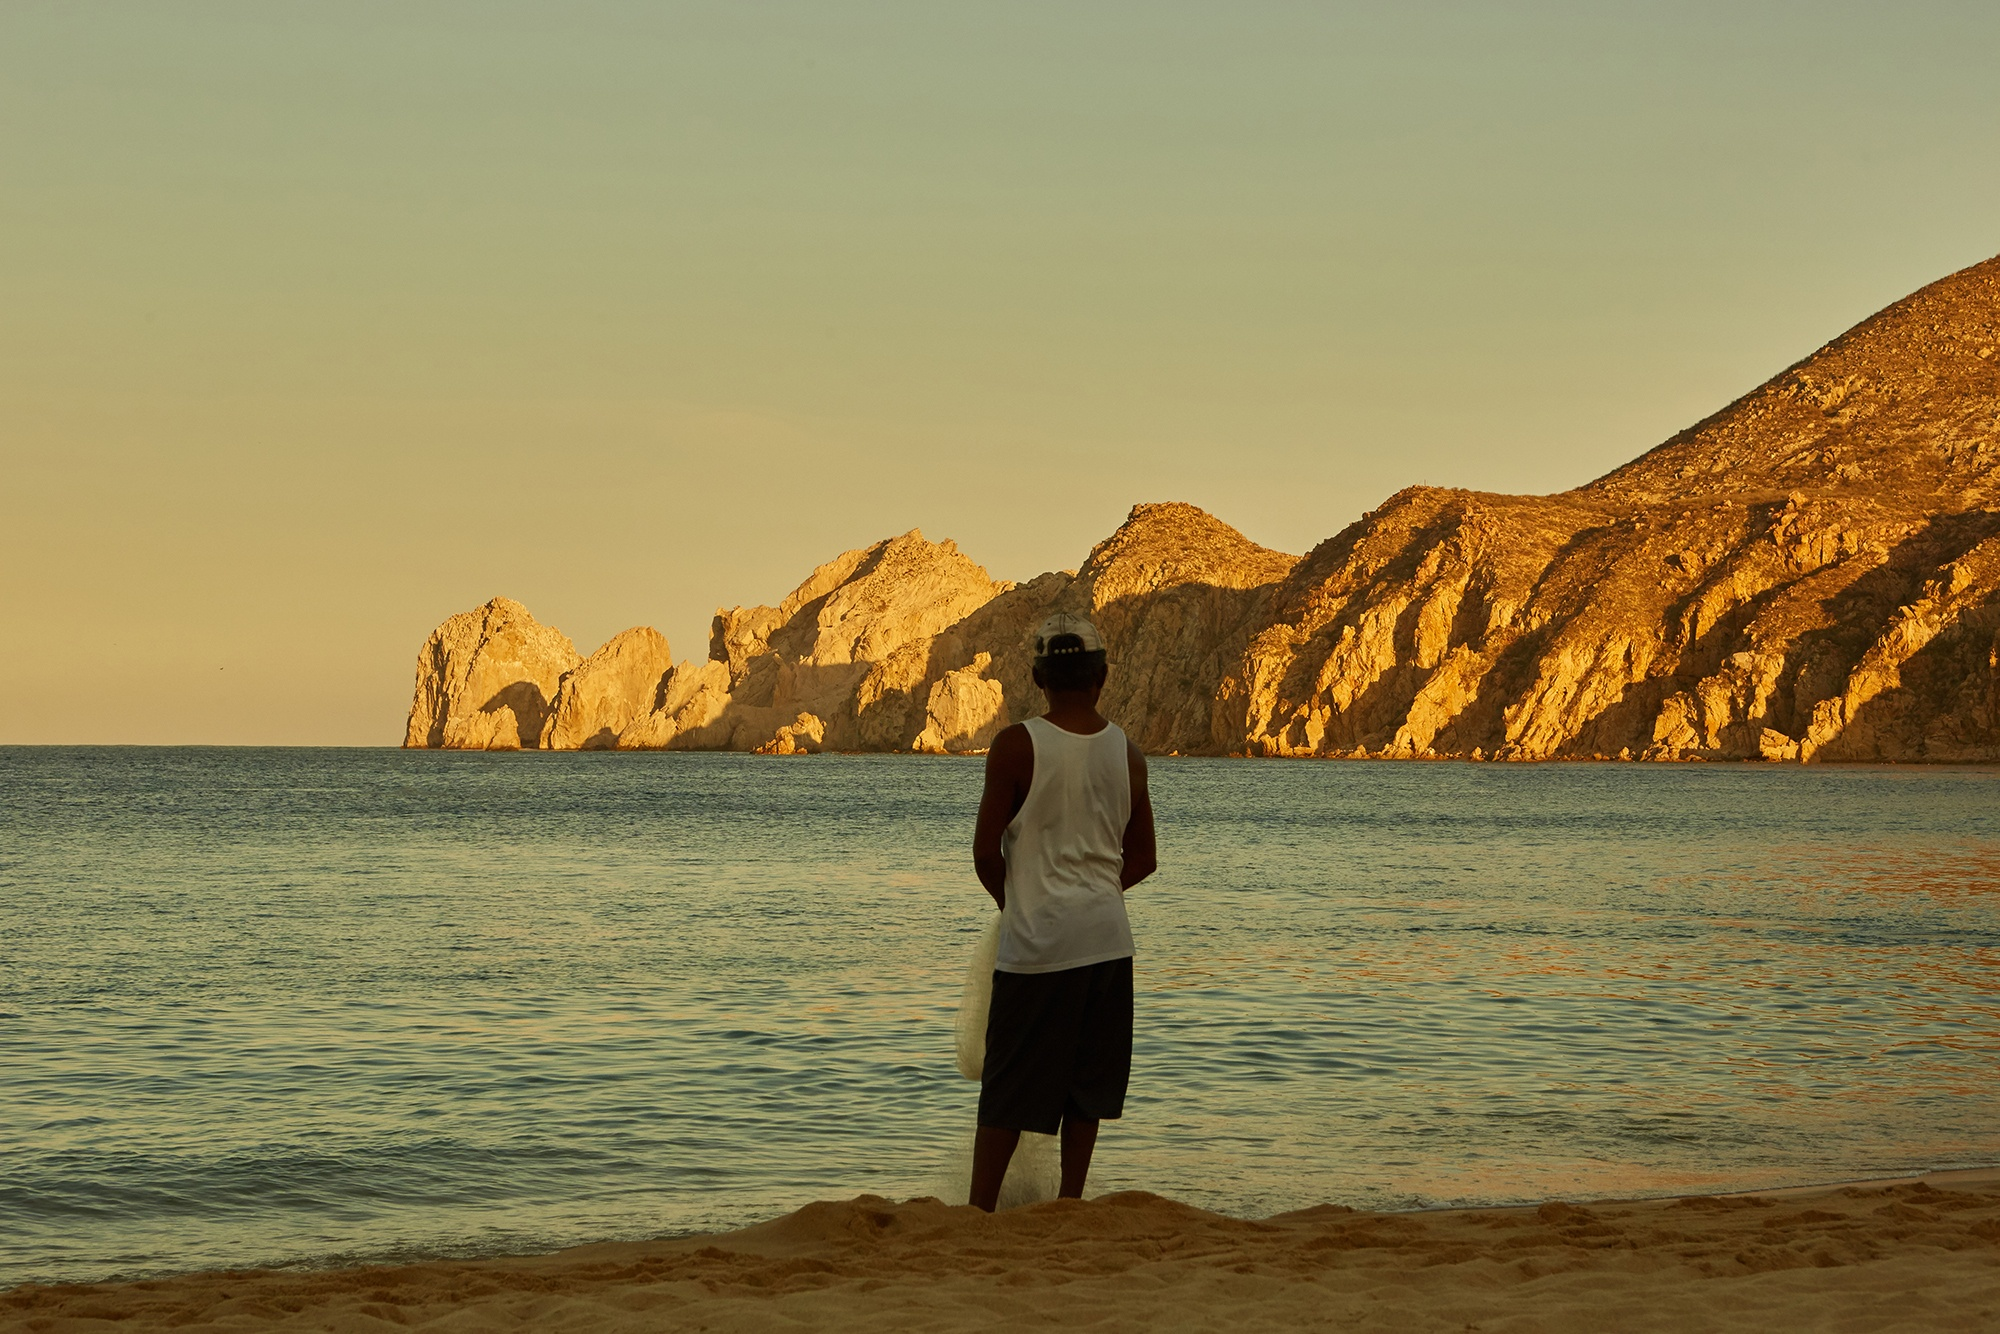 IGNANT-Travel-Best-Of-Road-Trips-Mexico-Jesse-Lizotte-03